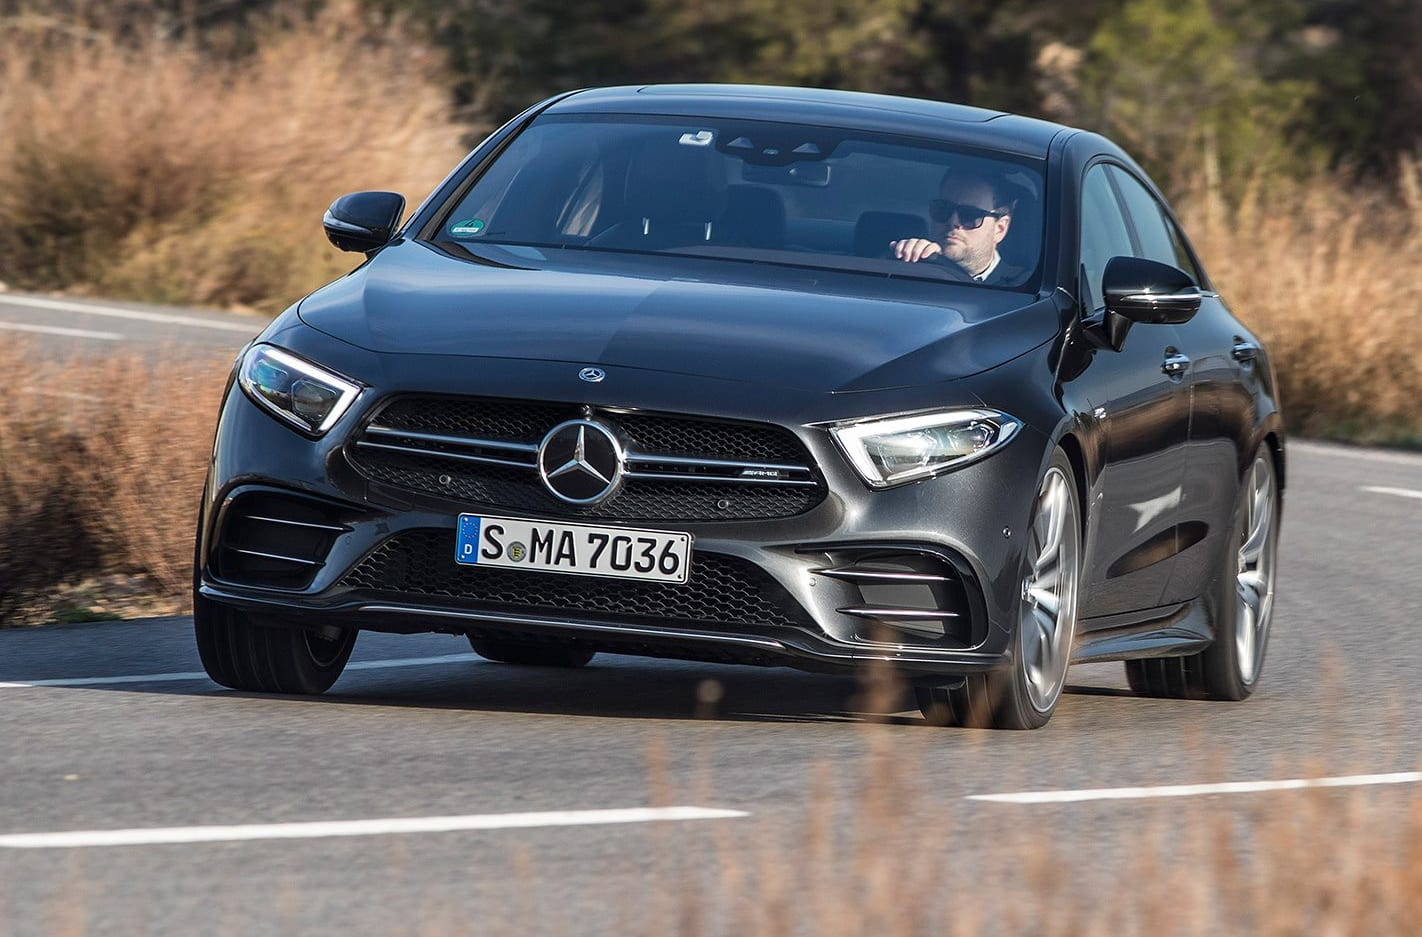 2018 Mercedes-AMG CLS53 review